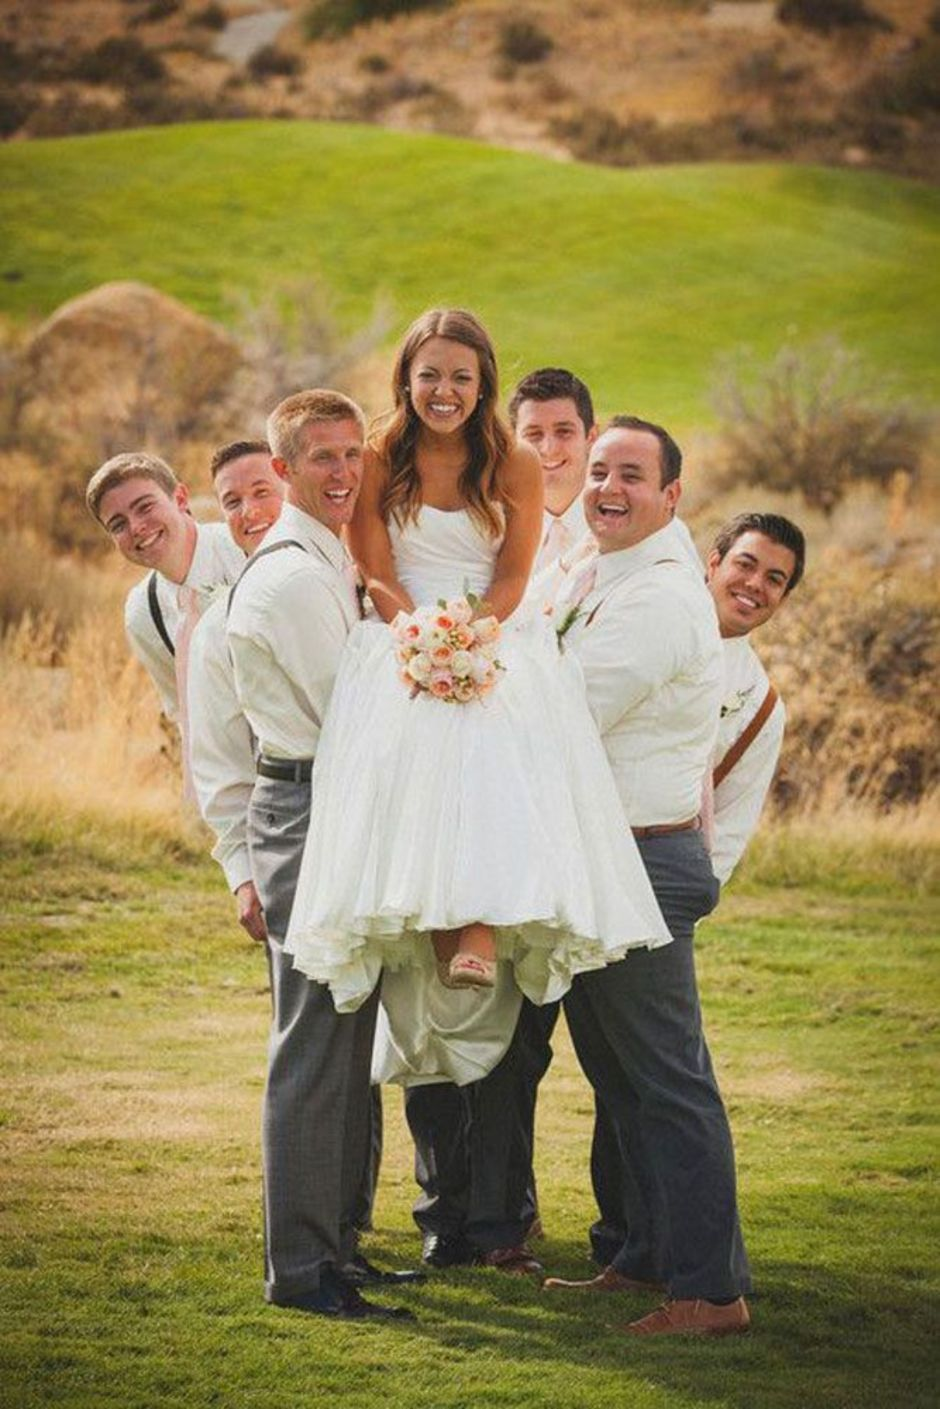 100+ Groomsmen Photos Poses Ideas You Can't Miss 110